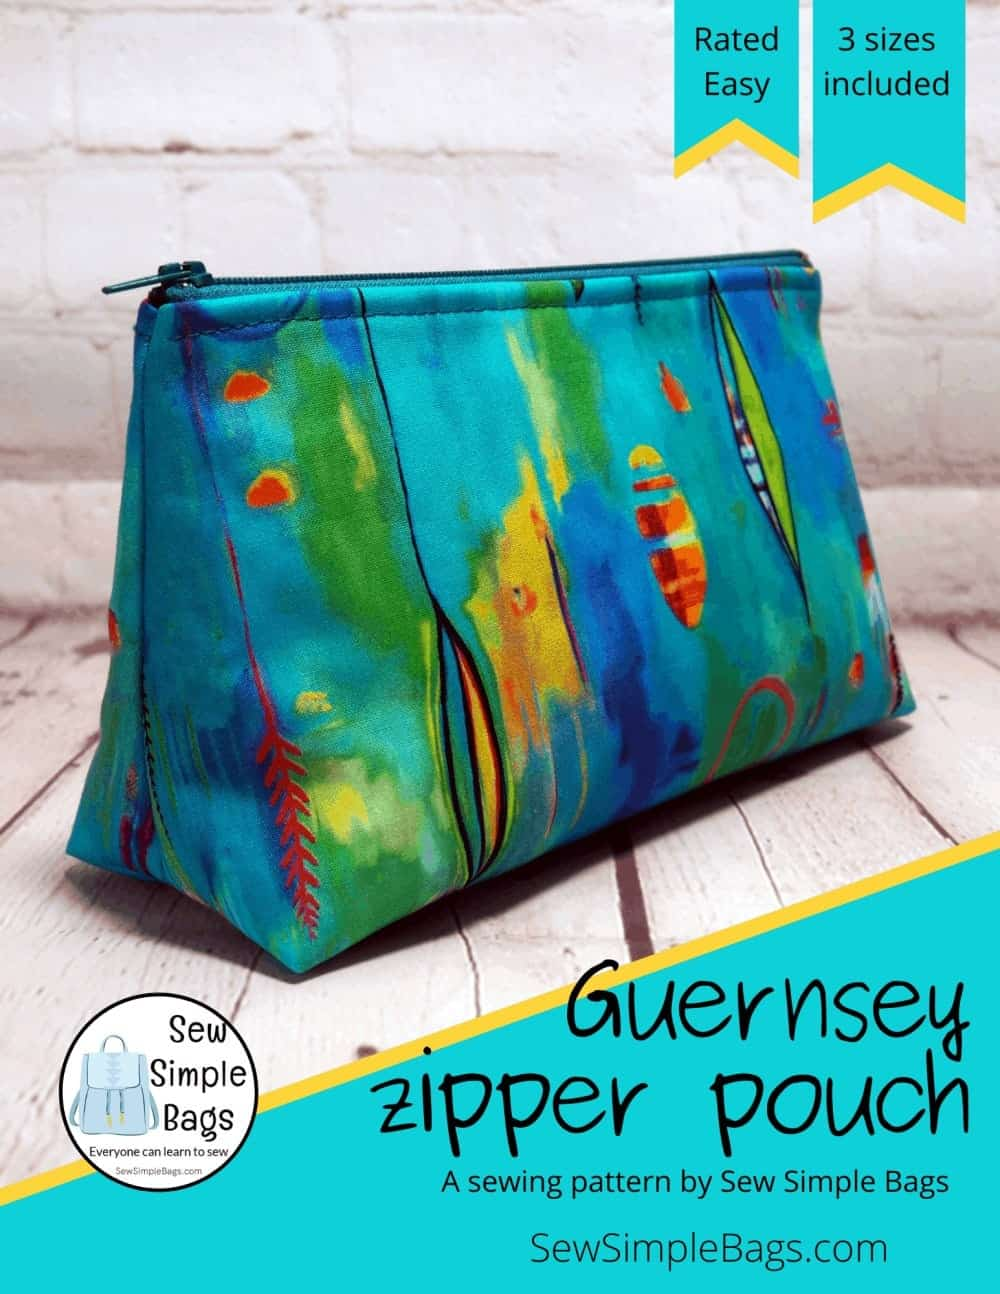 Easy sewing pattern for a cosmetics bag. Zipper pouch sewing pattern with easy to follow step by step instructions for beginners.